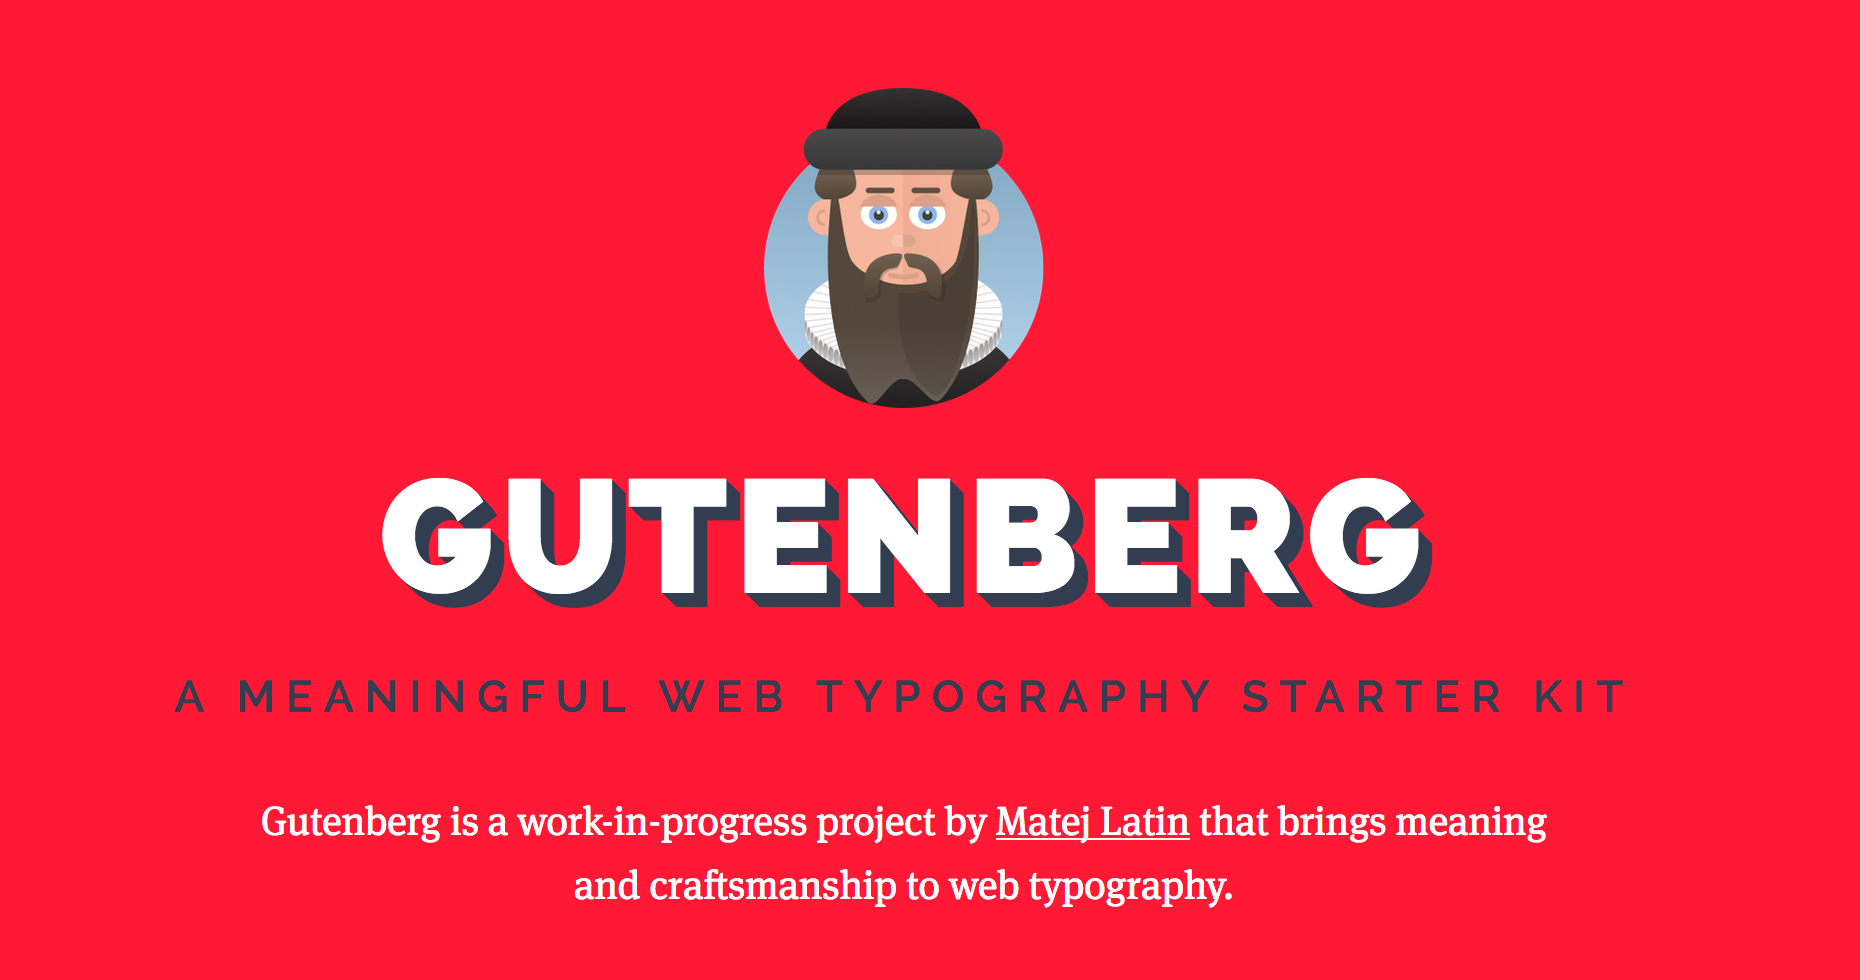 Gutemberg website